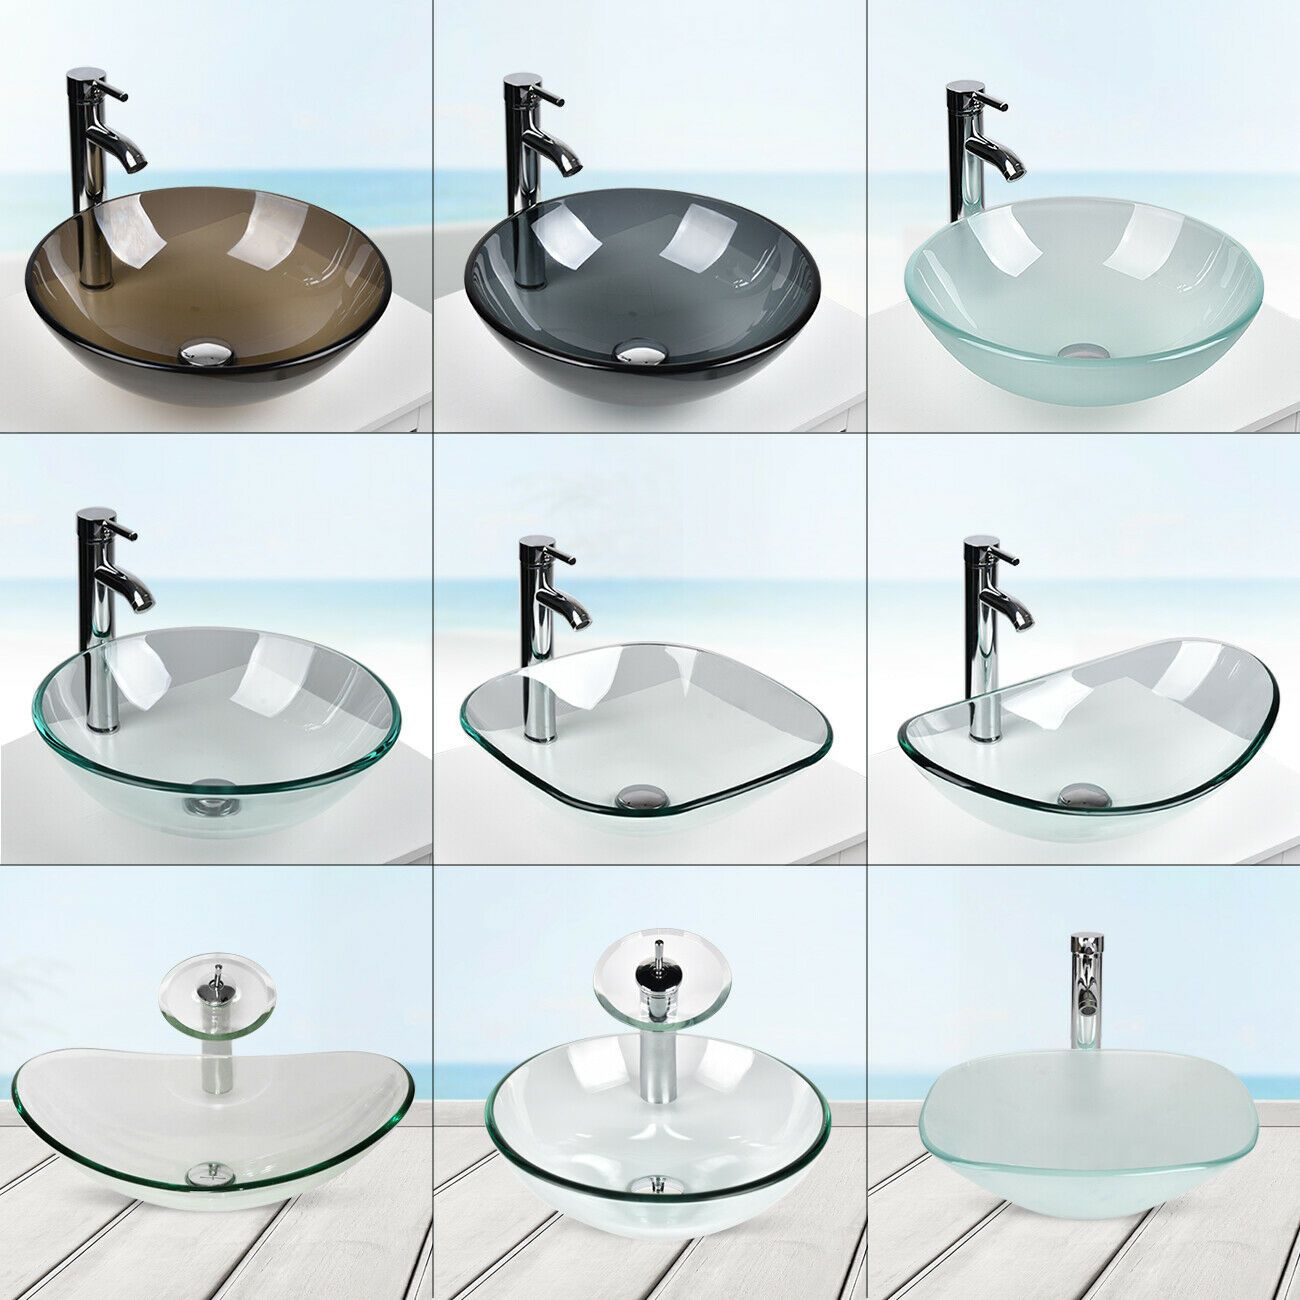 Bathroom Tempered Glass Vessel Sink Washing Bath Basin Bowl Faucet